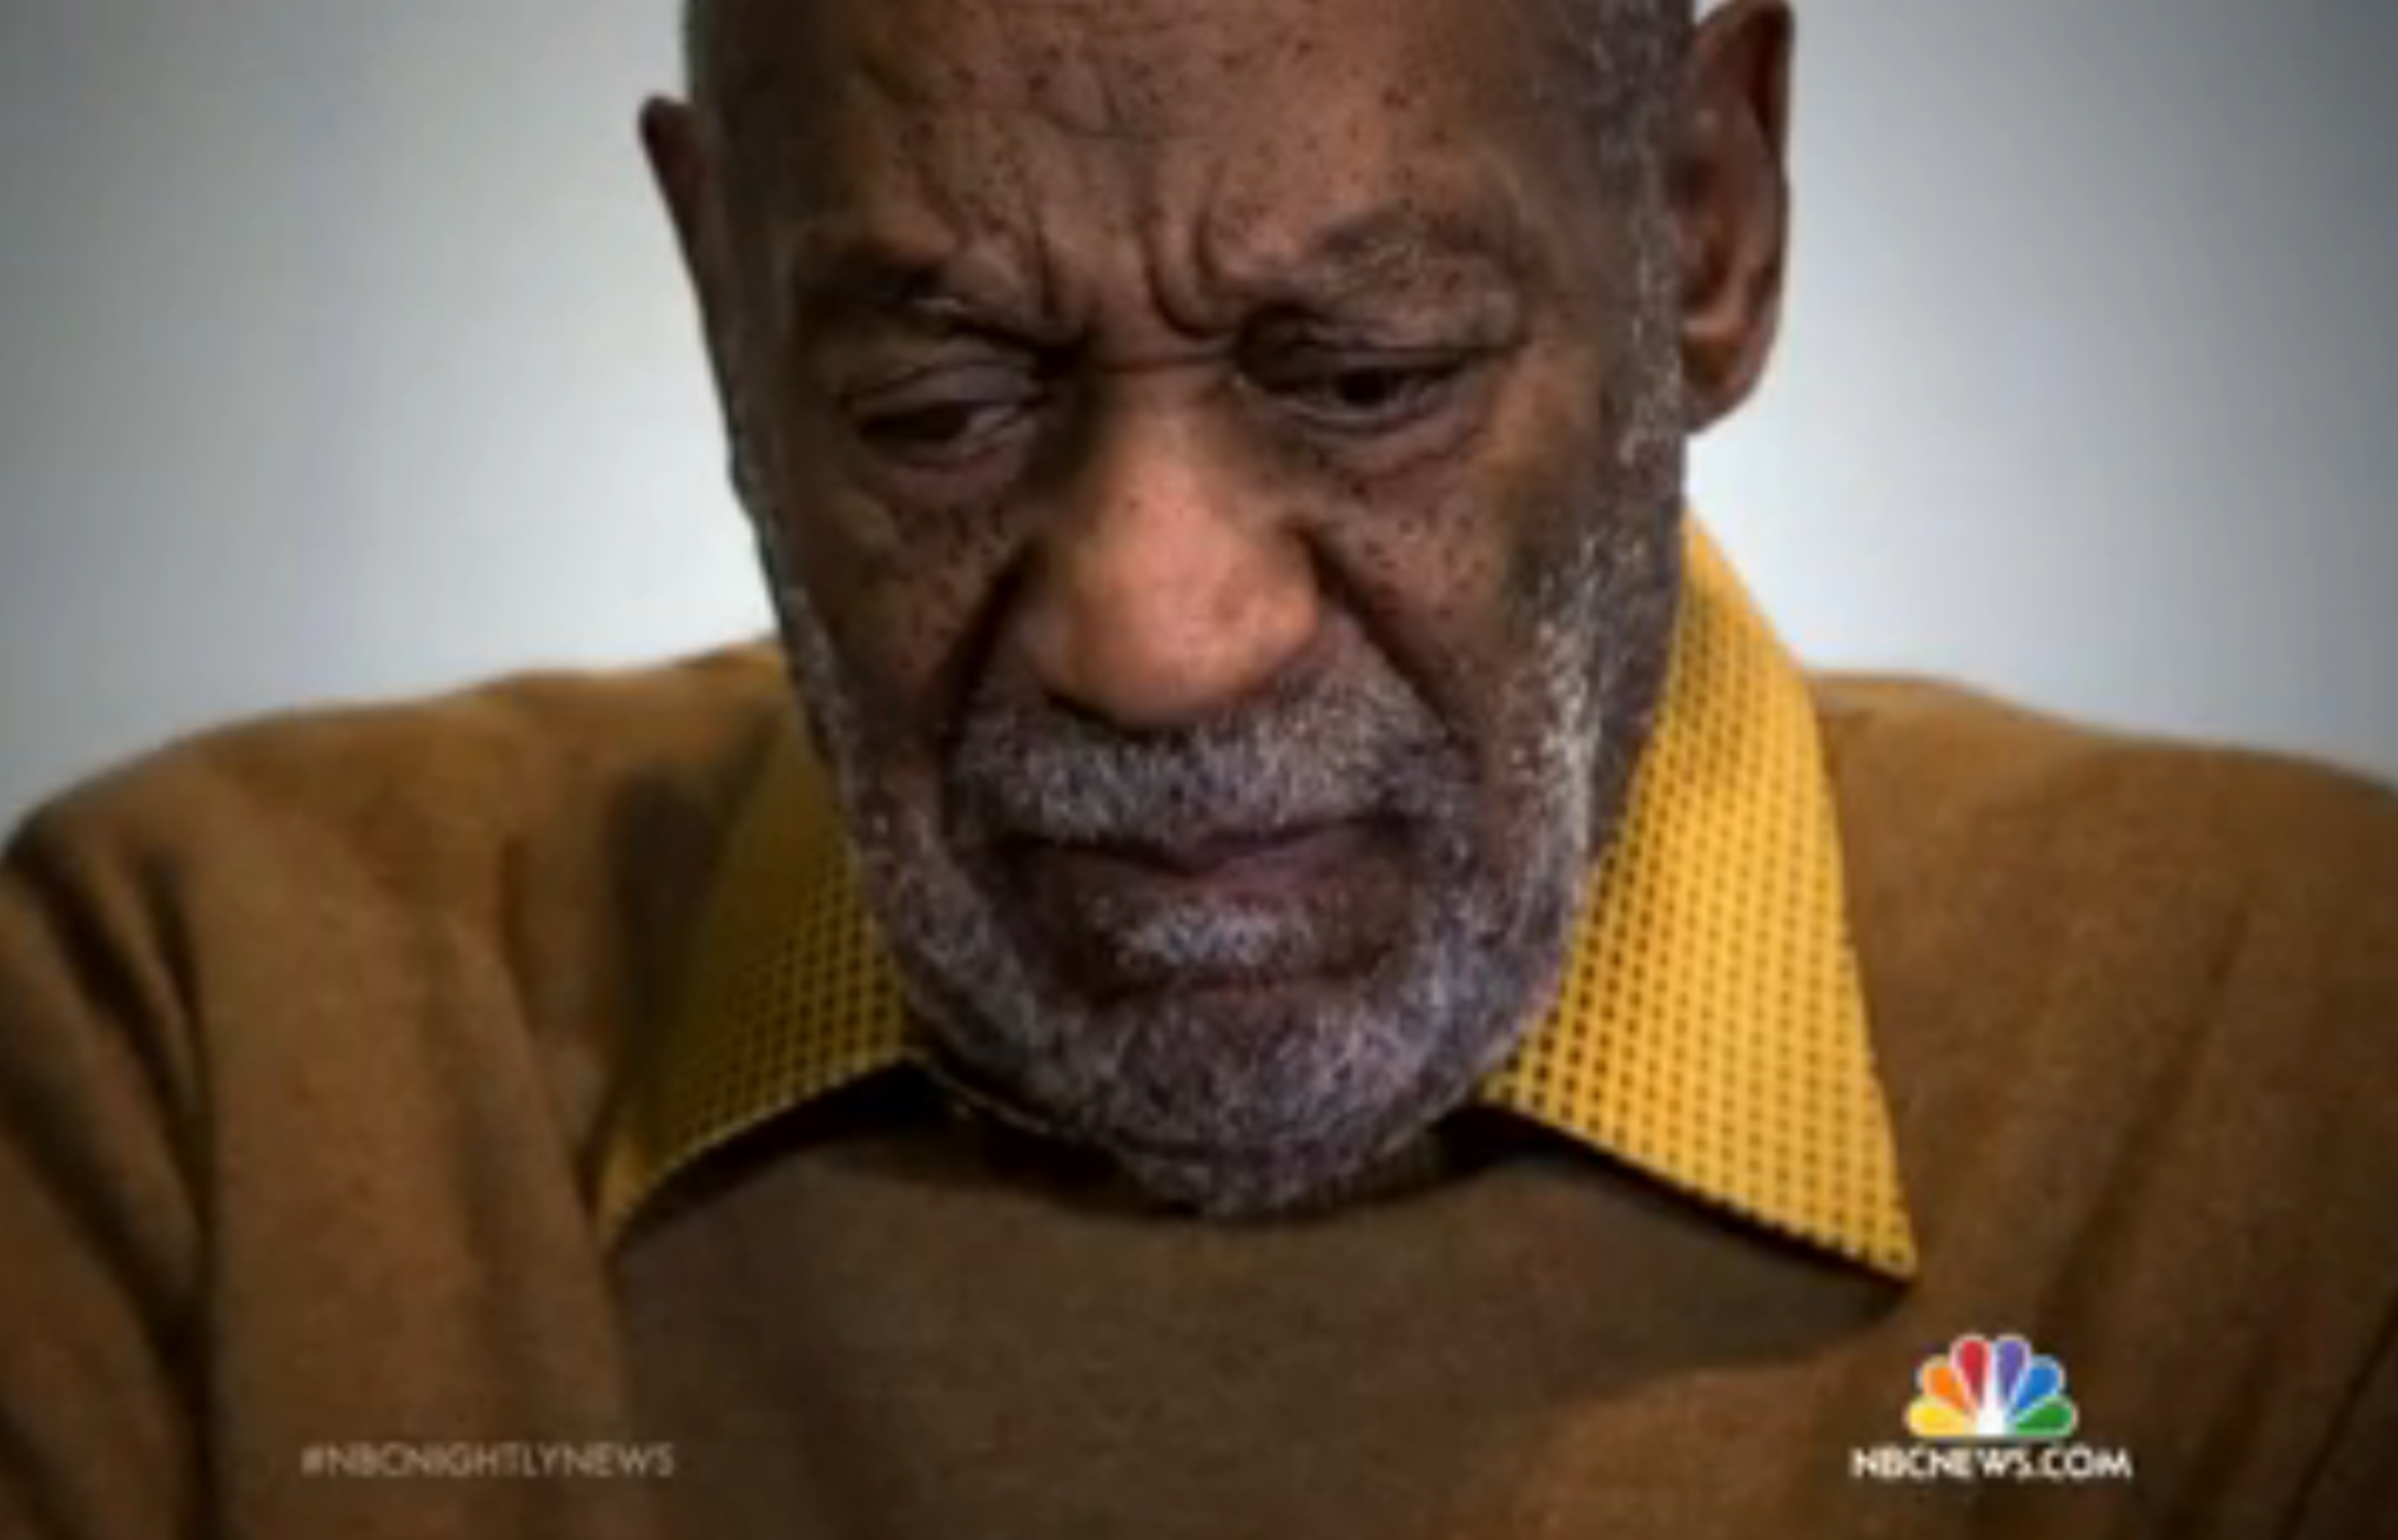 Cosby faces allegations